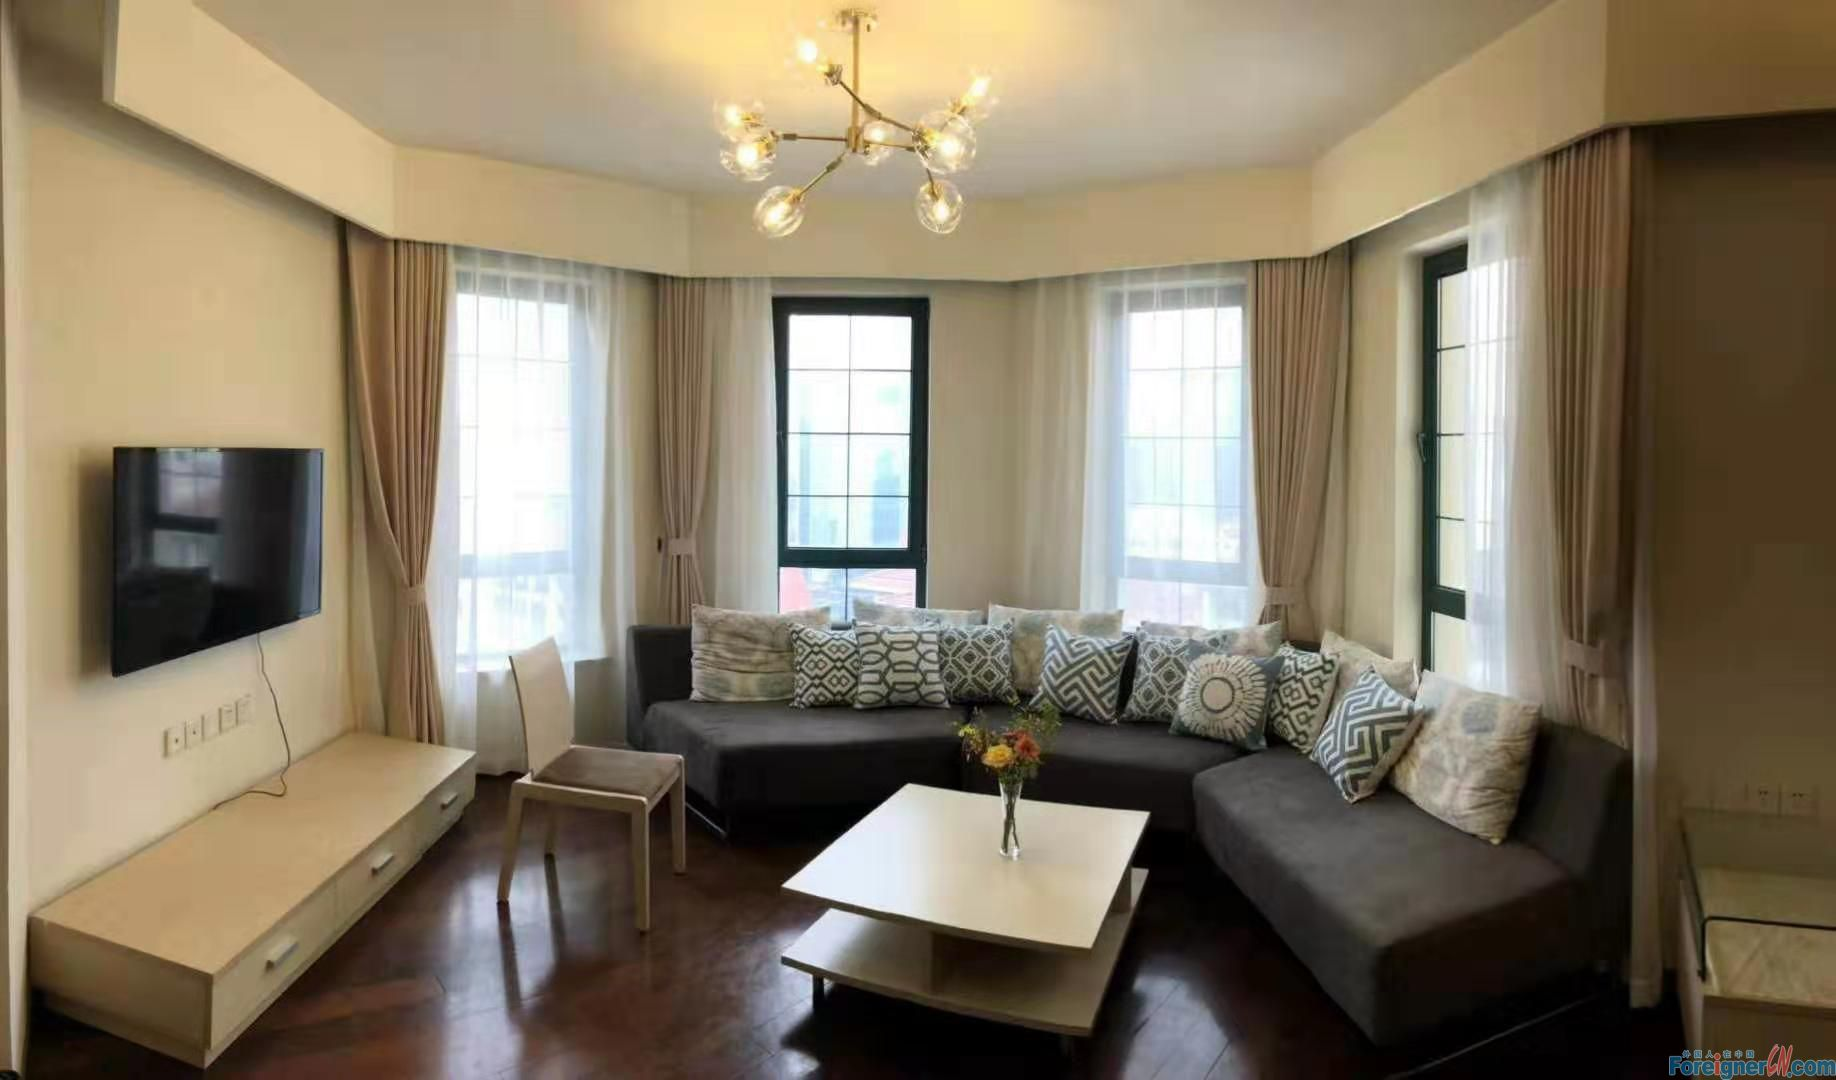 A Horizen Resort /Newly renovated 2 bedrooms in SIP /For Rent/Near Suzhou Center and Metro